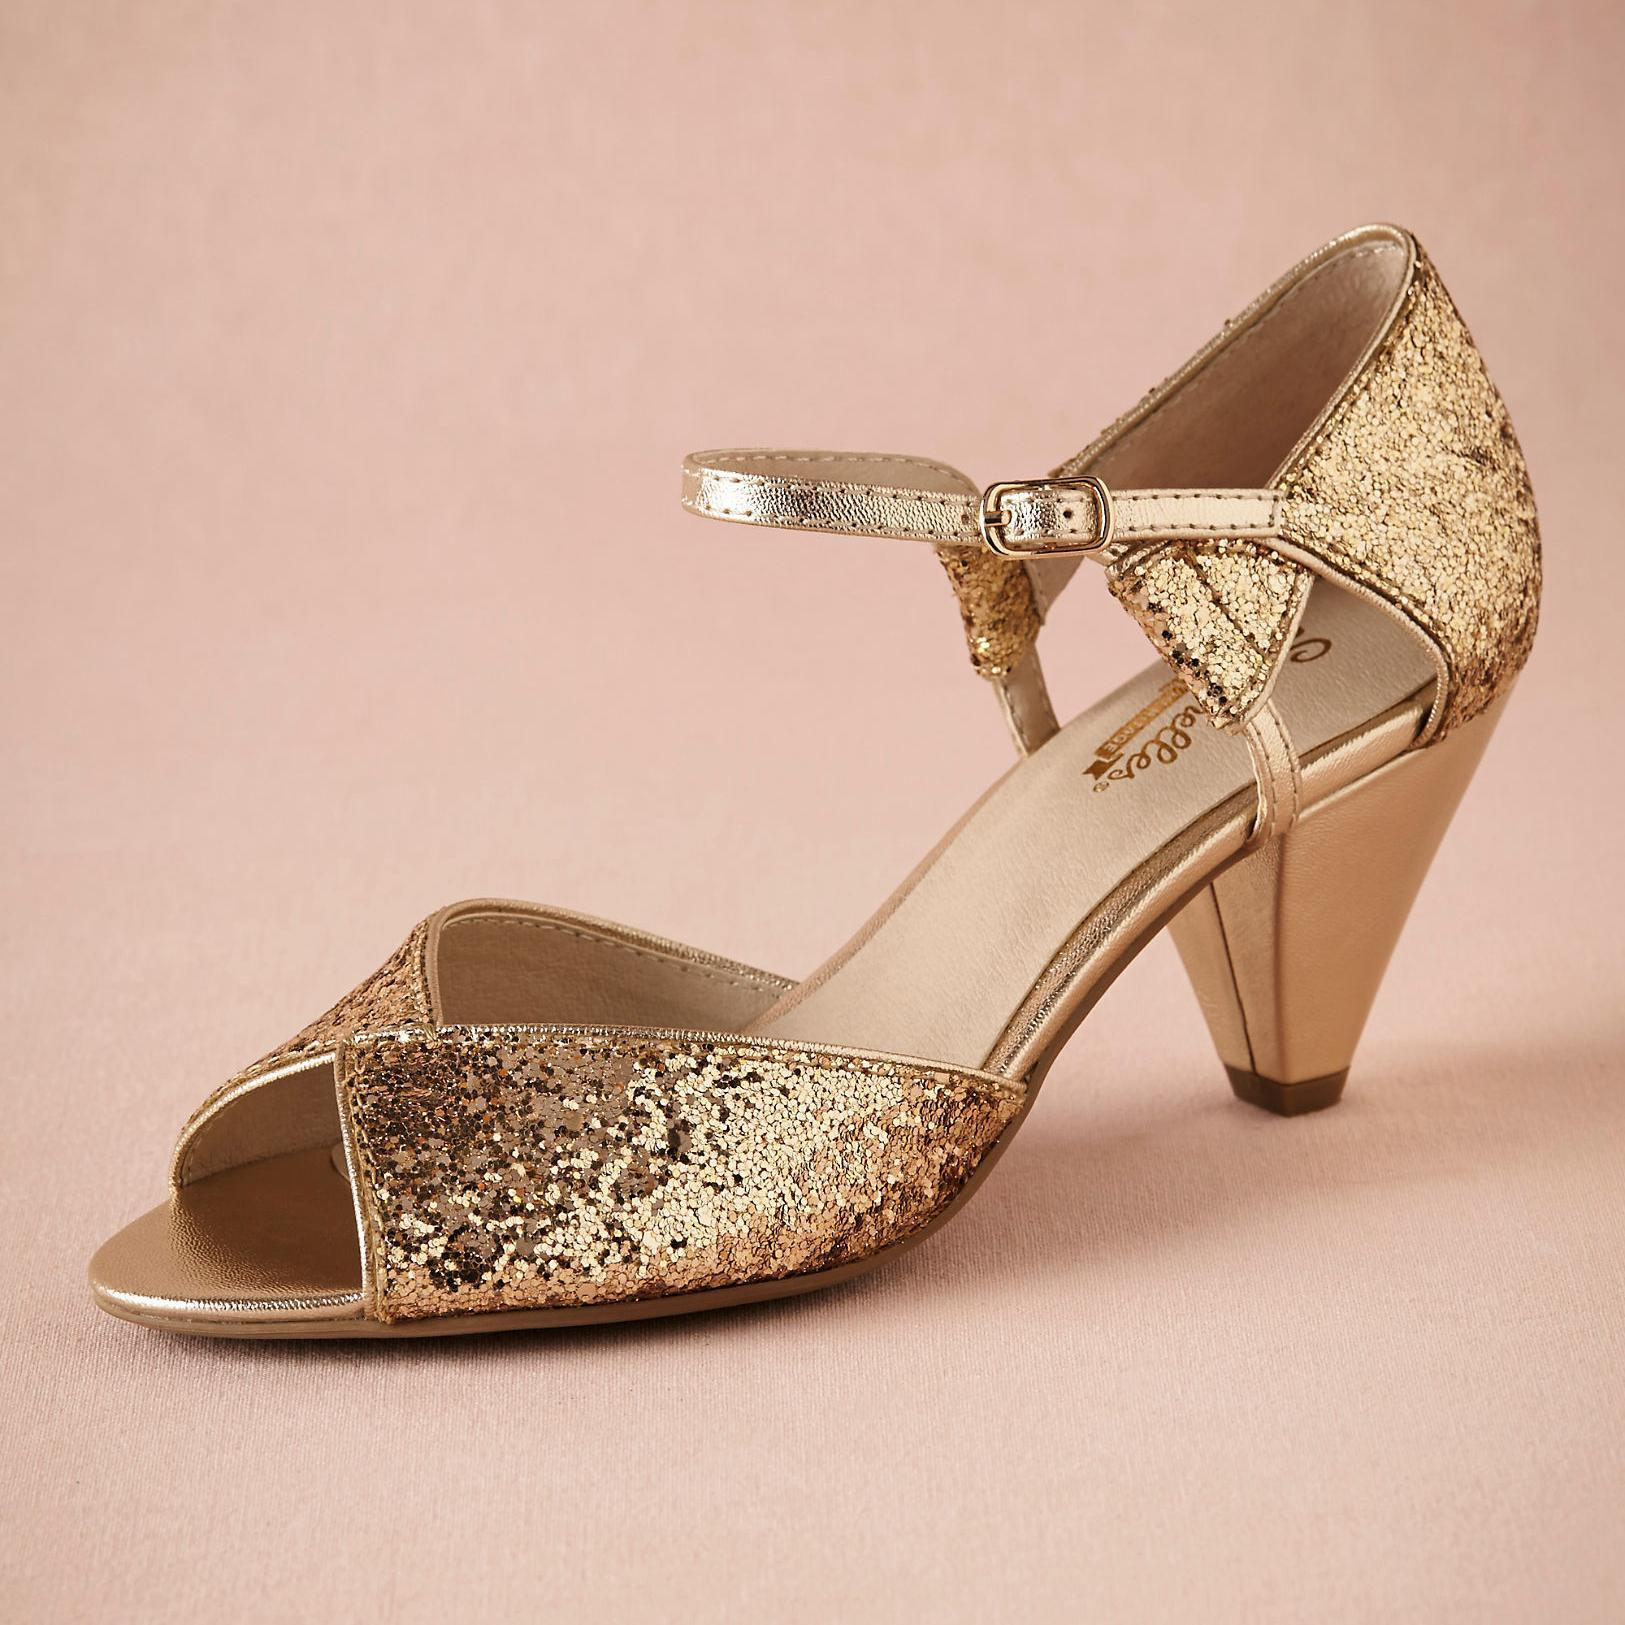 Cheap Gold Shoes For Wedding Cheap Wedding Shoes Glittery